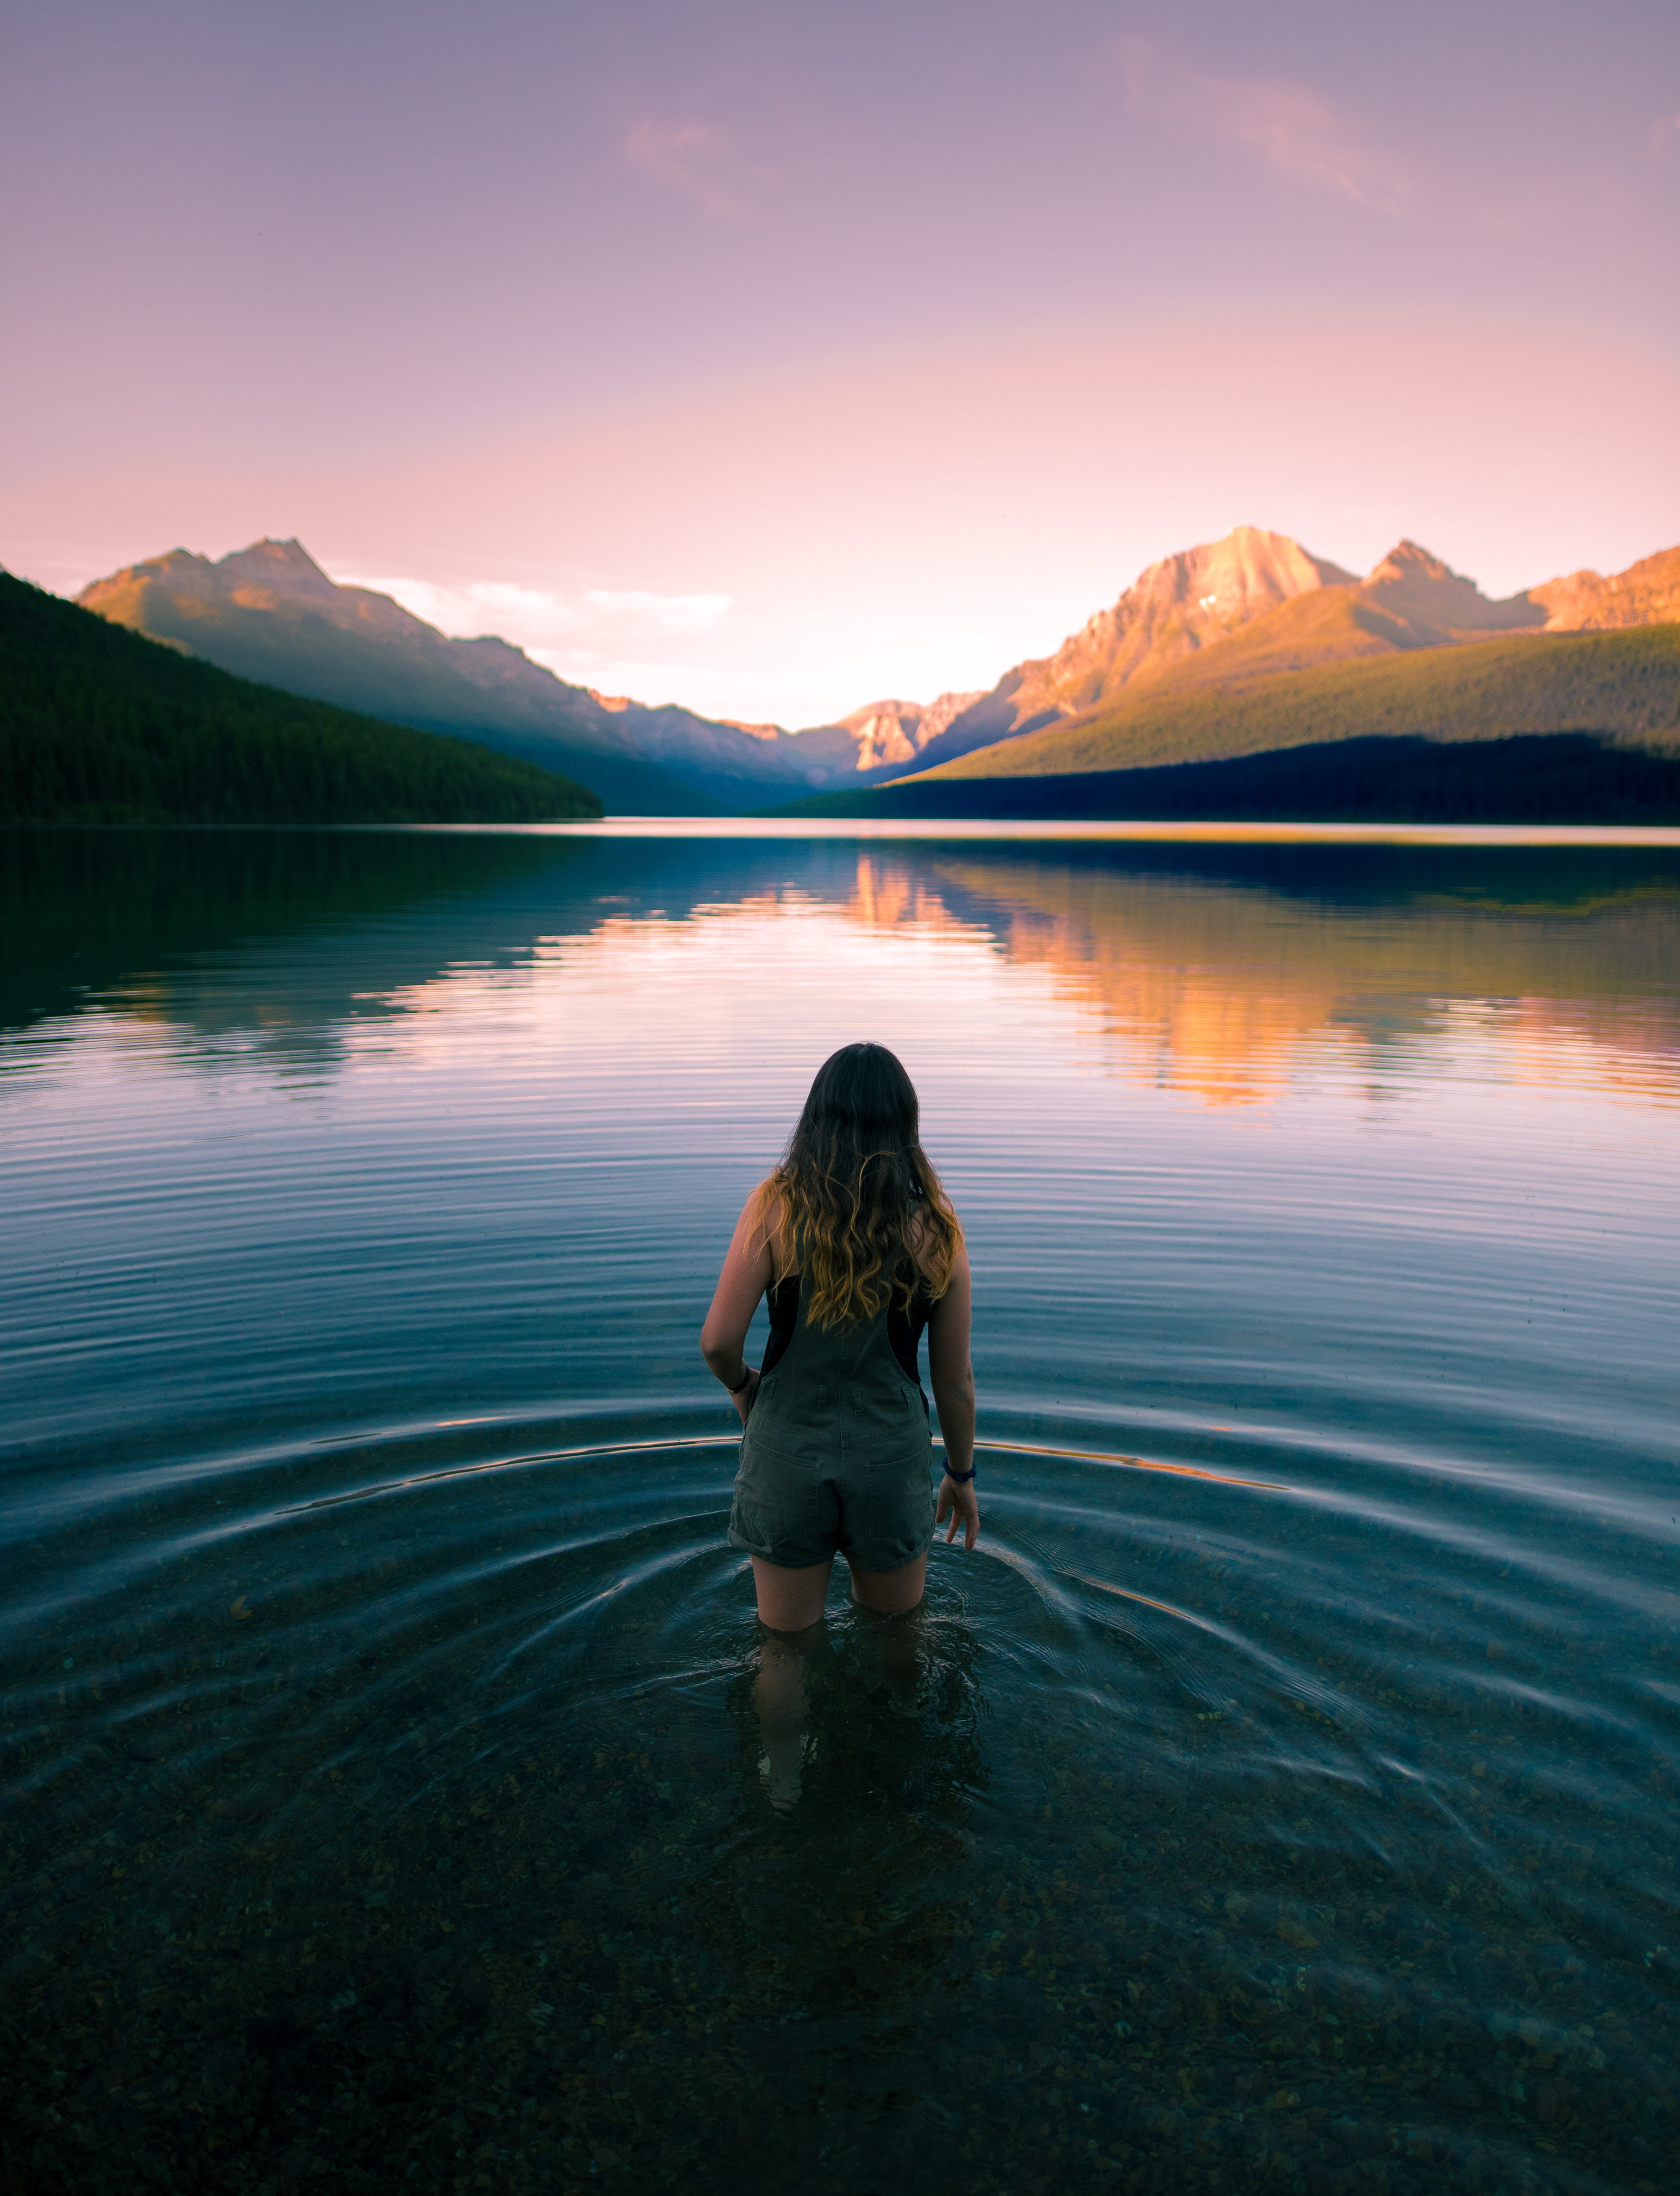 A girl wearing overall shorts standing in Bowman Lake during golden hour with the mountains in the background